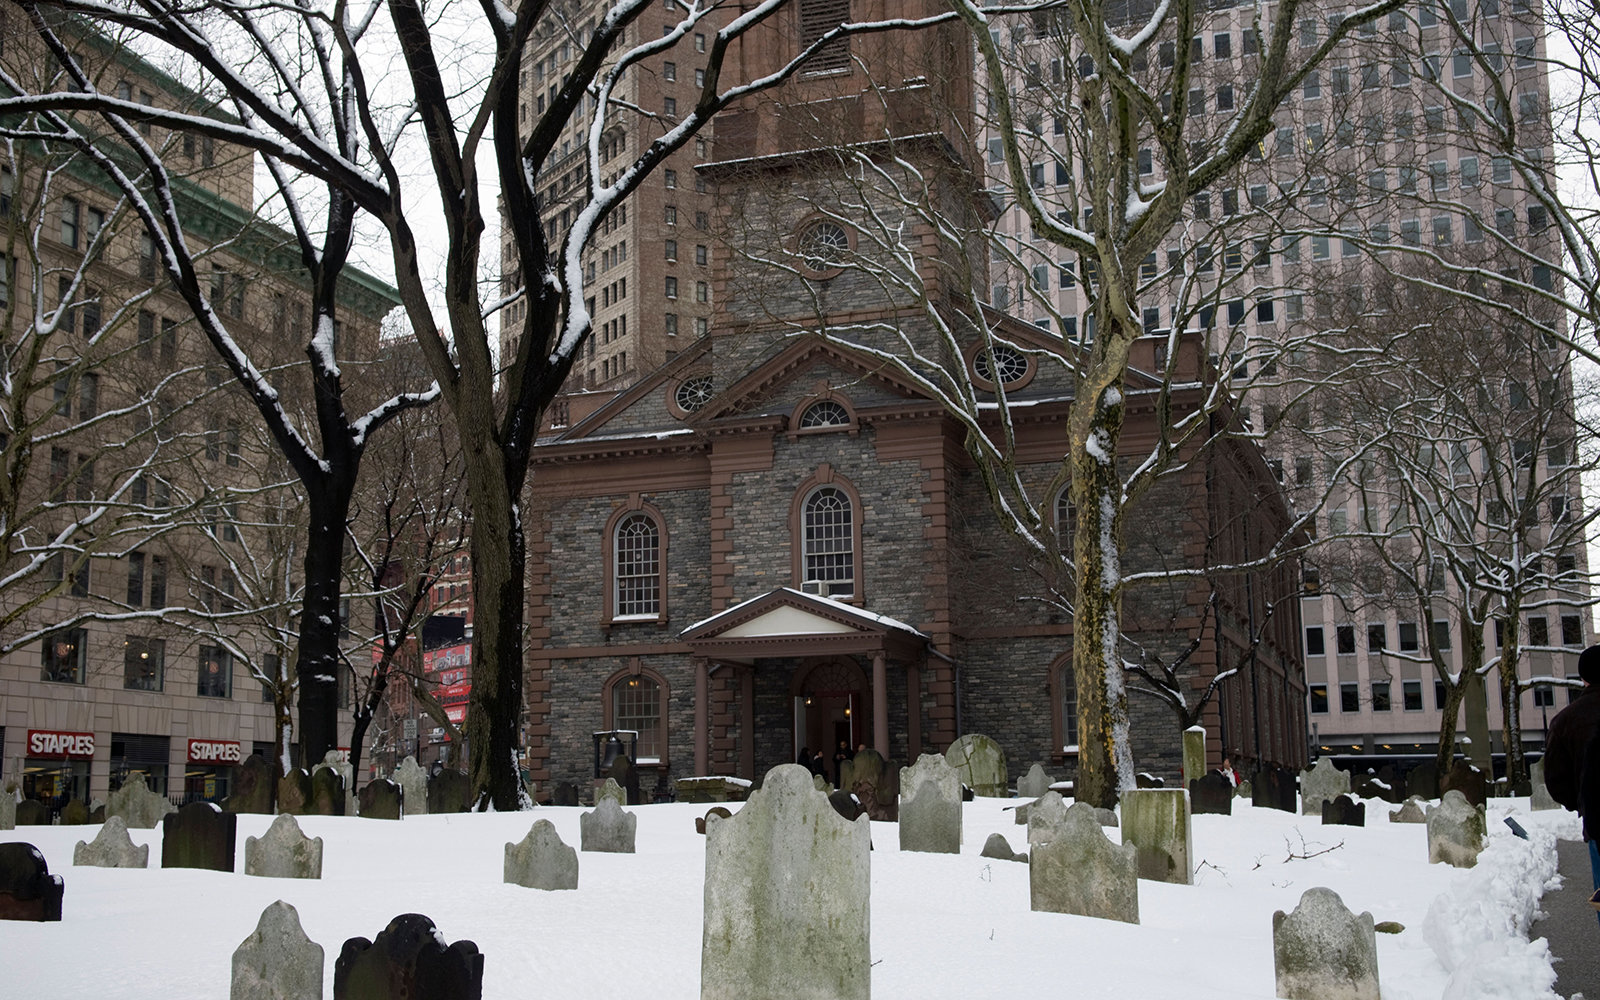 BHYXNB The cemetery of St. Paul's Chapel in the snow in Lower Manhattan on Saturday, February 27, 2010. (© Frances M. Roberts)